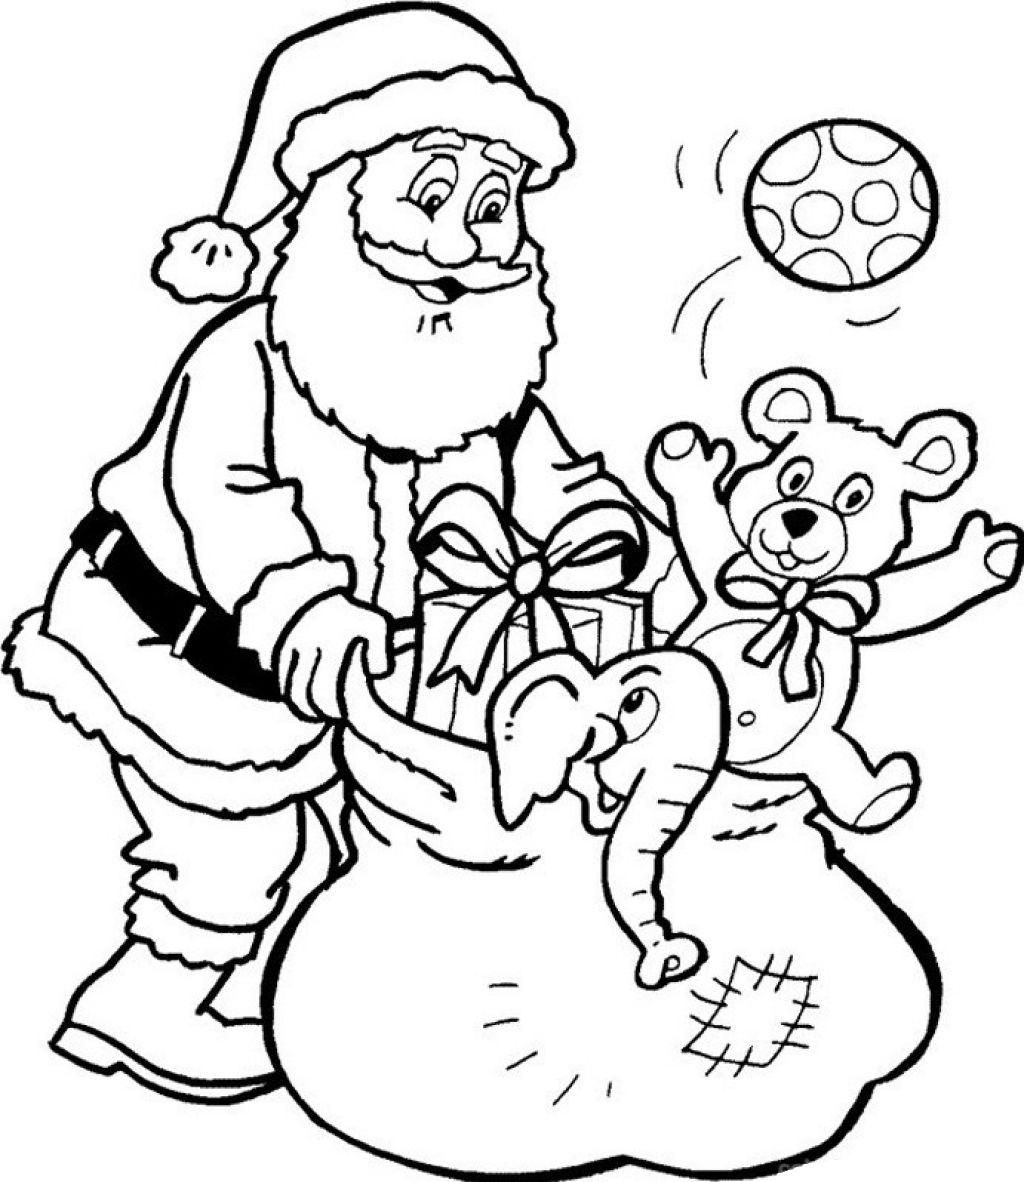 Printable Santa Claus Coloring Page Printable Santa Claus Coloring ...